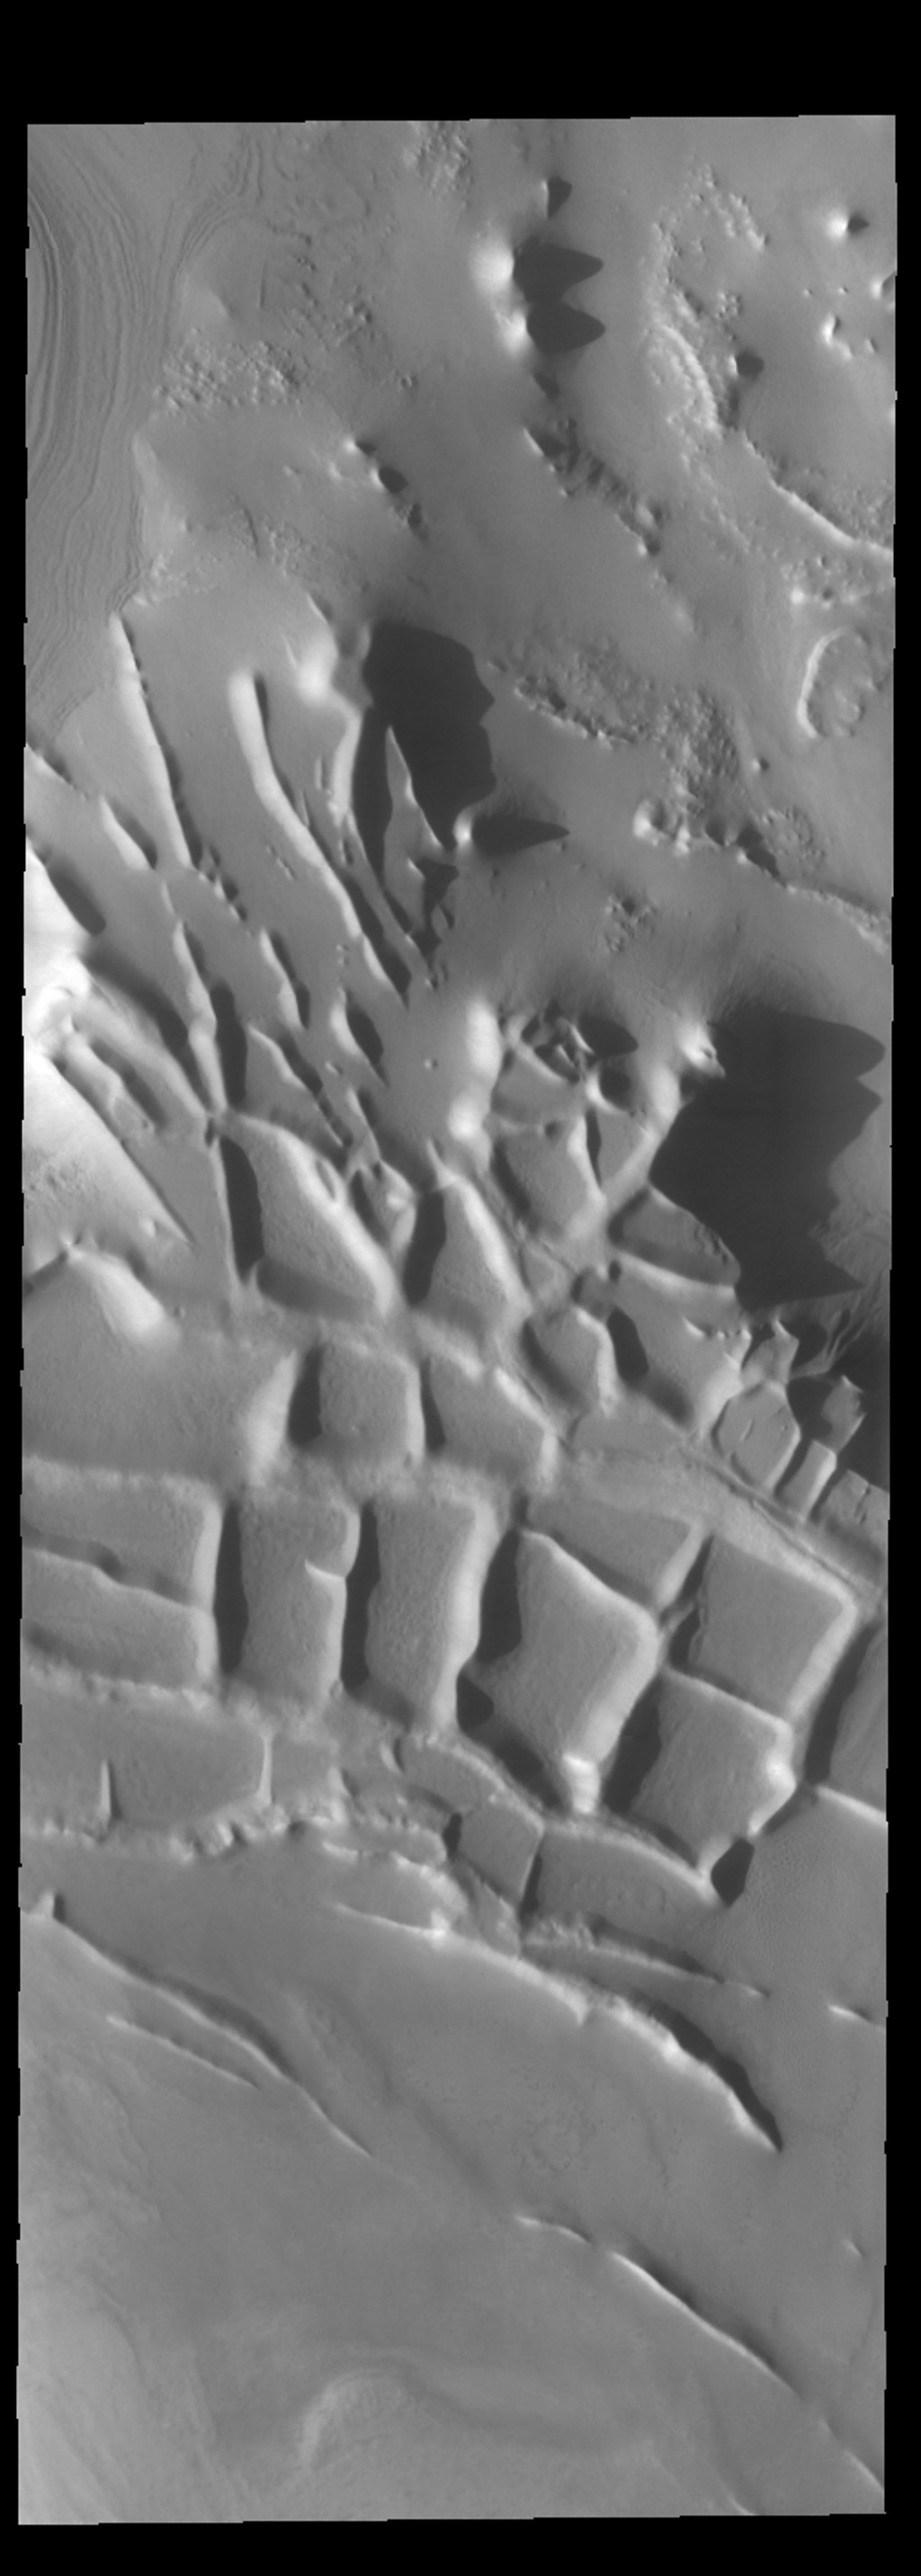 This image captured by NASA's 2001 Mars Odyssey spacecraft shows the region near the south polar cap called Angustus Labyrinthus, which is defined by the linear ridges.